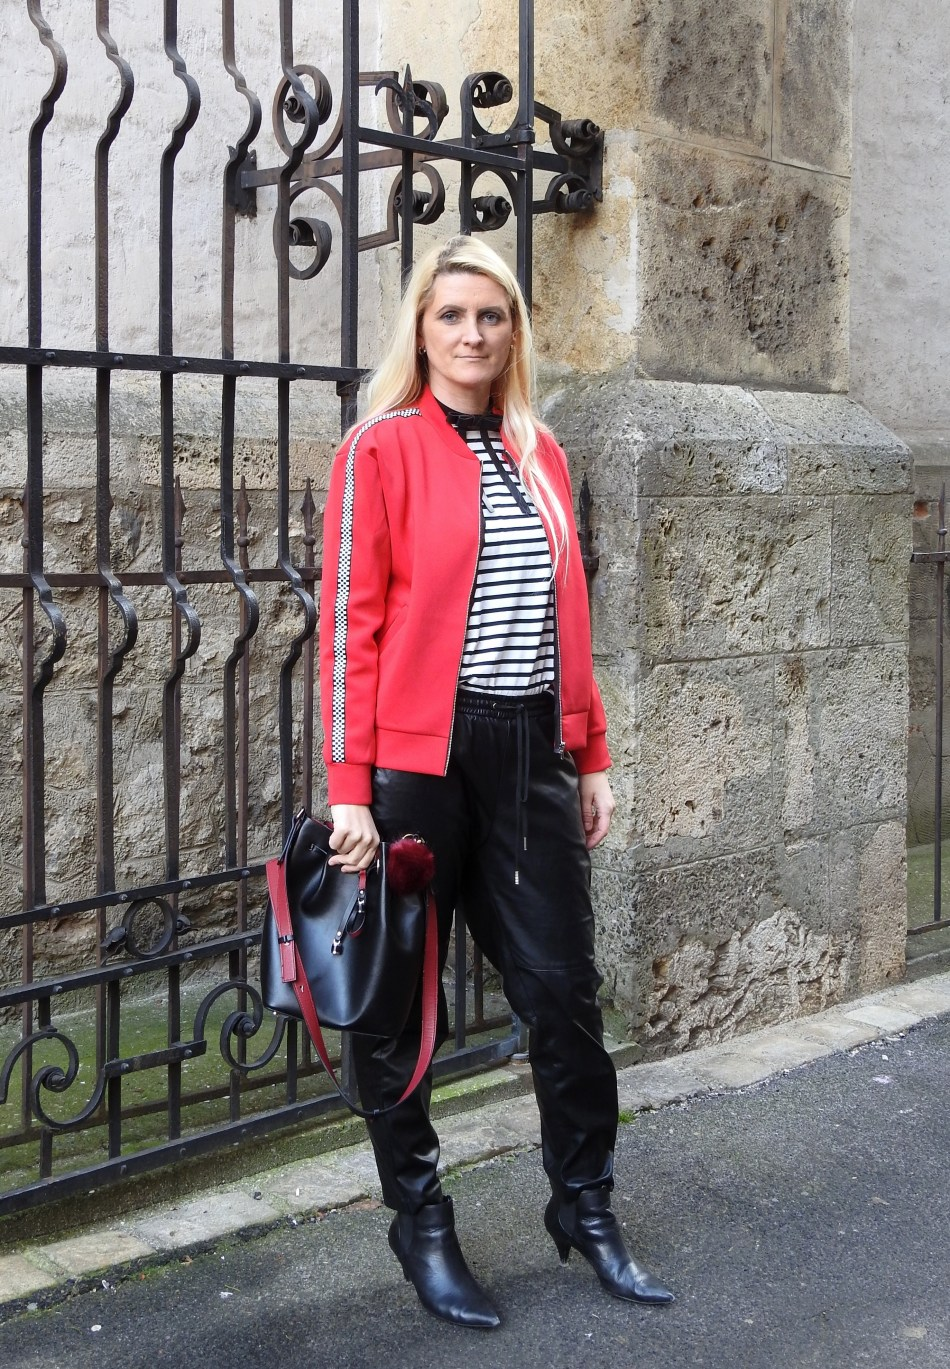 Bomberjacke-Bomberjacket-Leatherpants-Boots-Stripes-Striped-Shirt-Choker-carrieslifestyle-Tamara-Prutsch